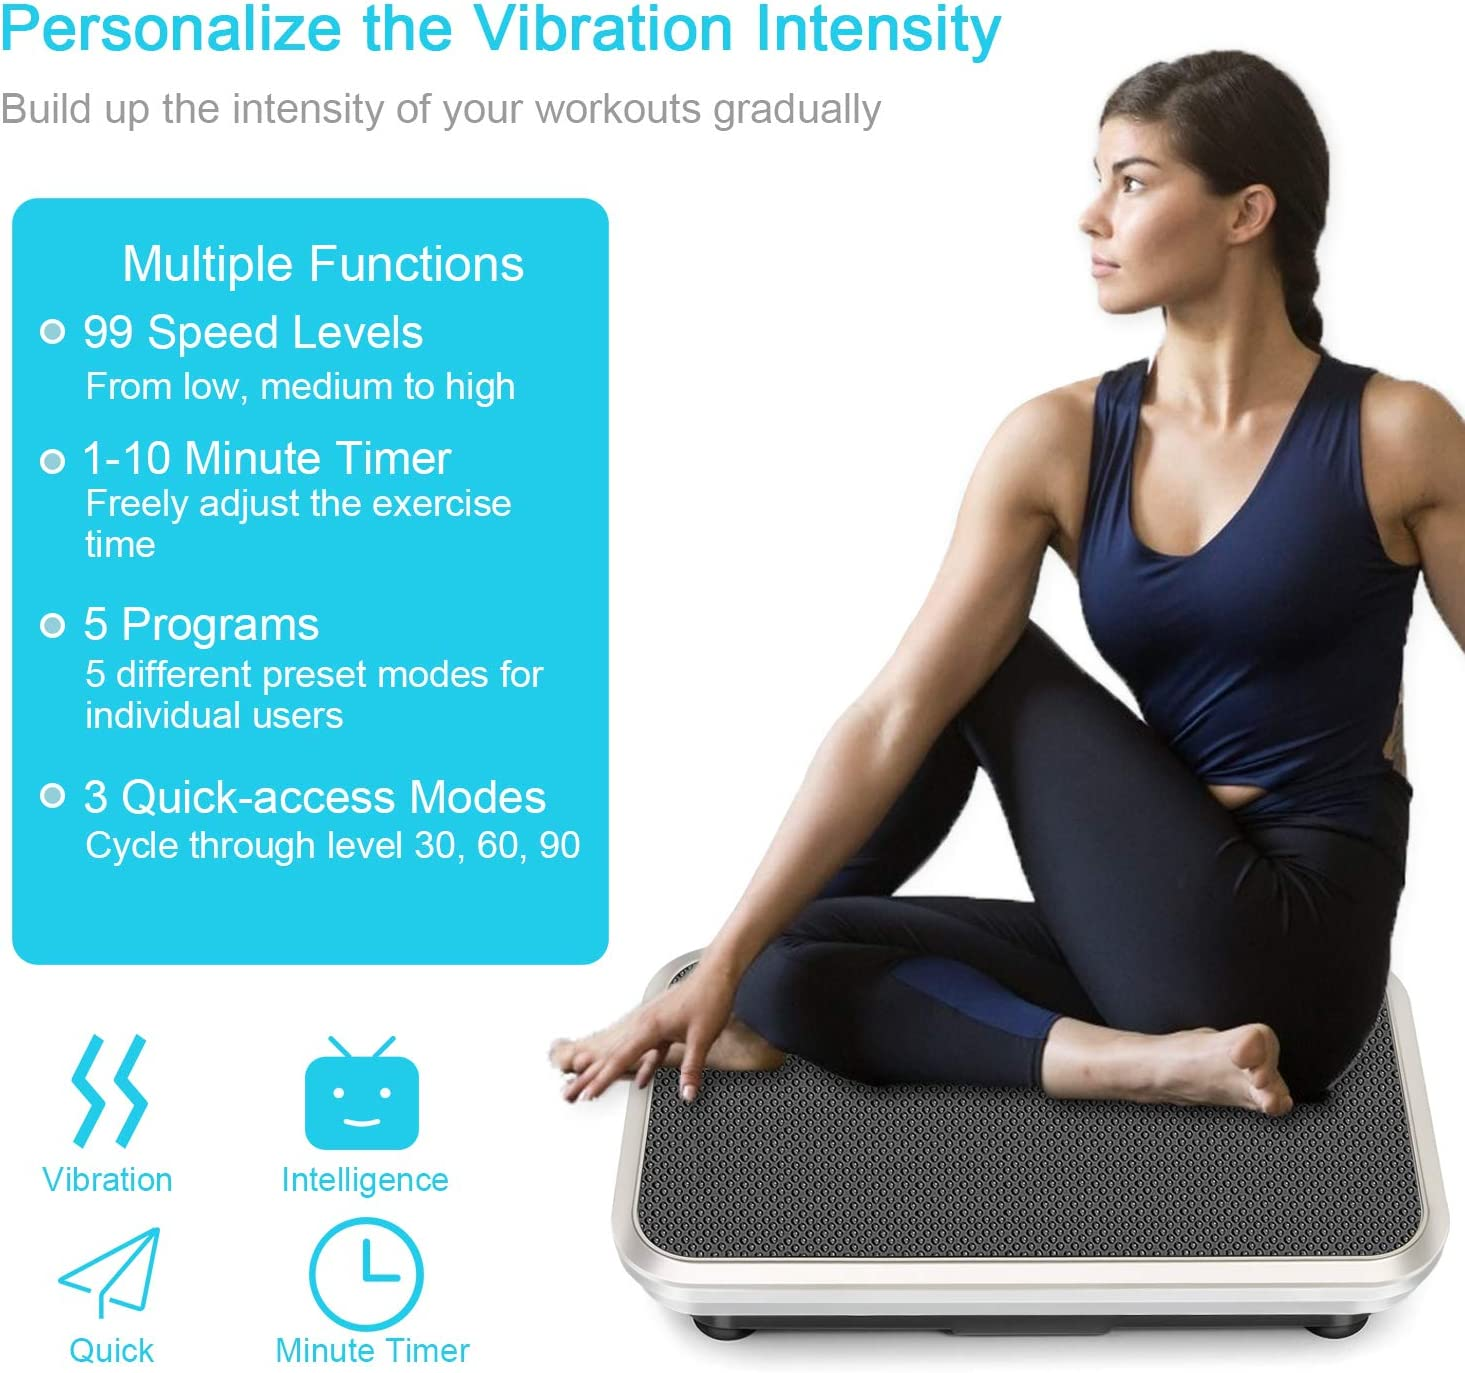 EveryMile Vibration Plate Exercise Machine,3D Motion Vibration Platform with Remote Control Resistance Bands, Full Whole Body Massage Vibration Workout for Home Fitness, Weight Loss, Toning Shaping